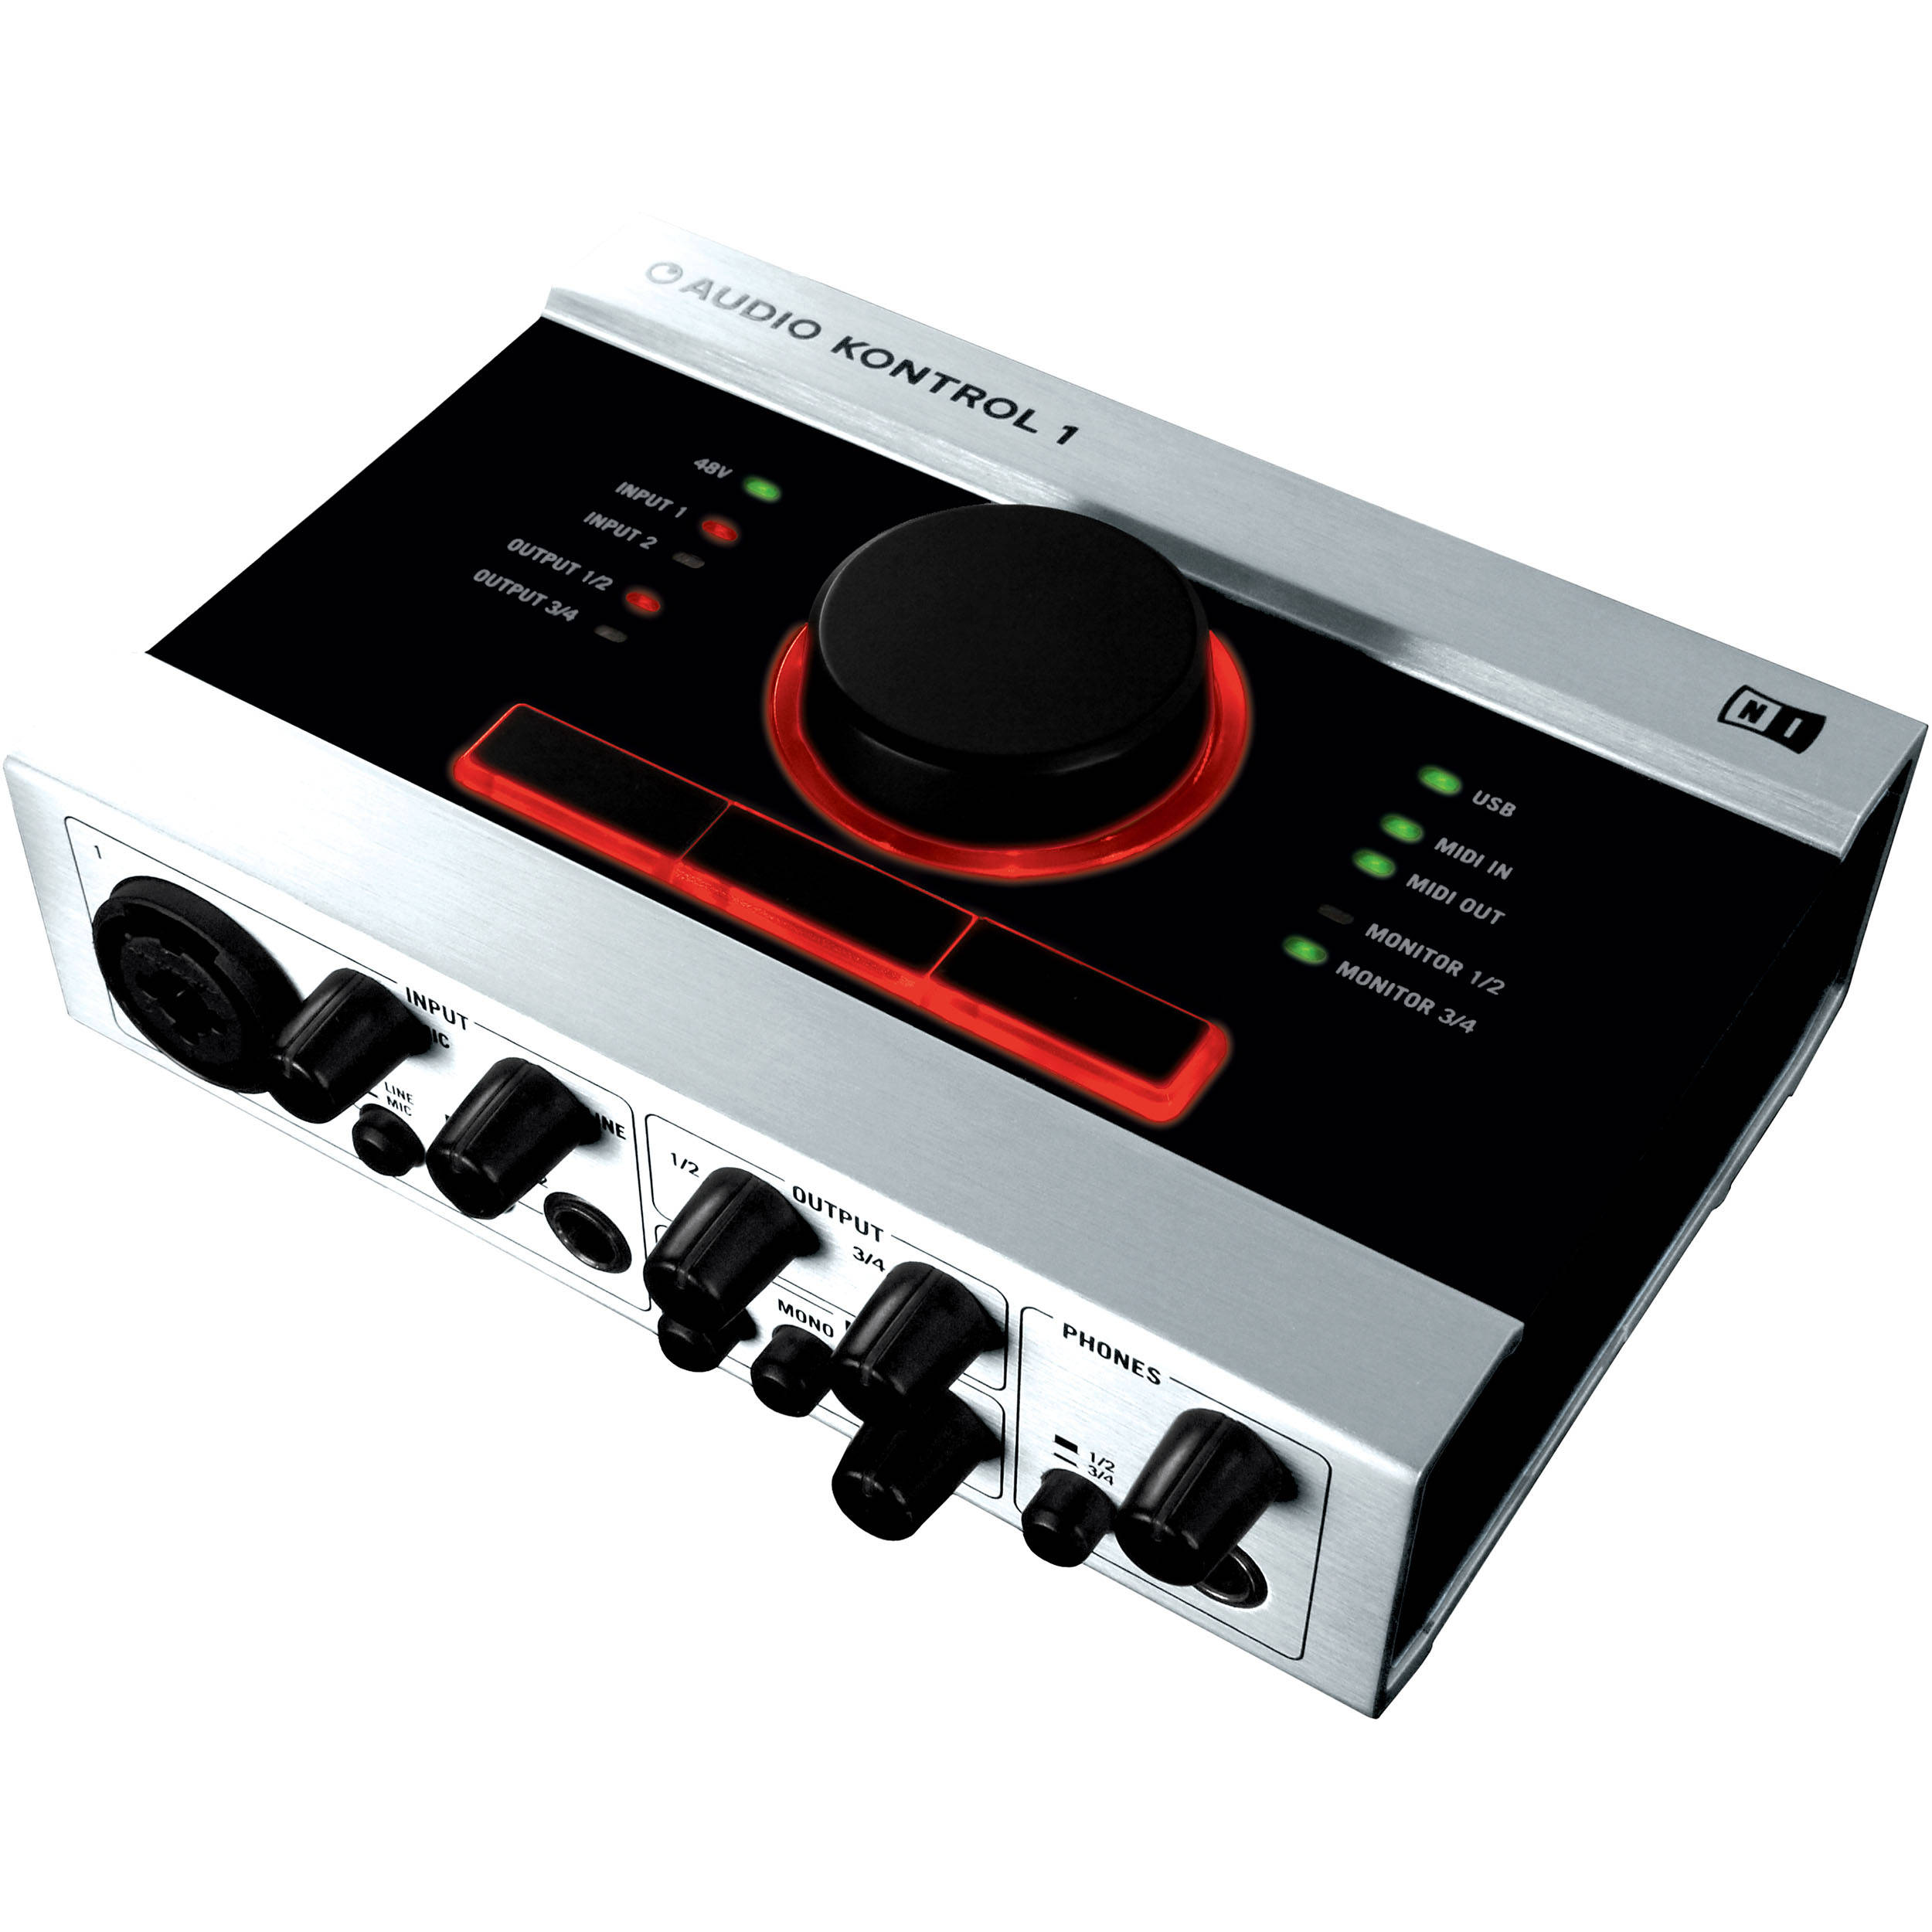 Native Instruments AUDIO KONTROL 1 - 2 Input / 4 Output USB 2 0 Audio  Interface for Mac OS X and Windows XP